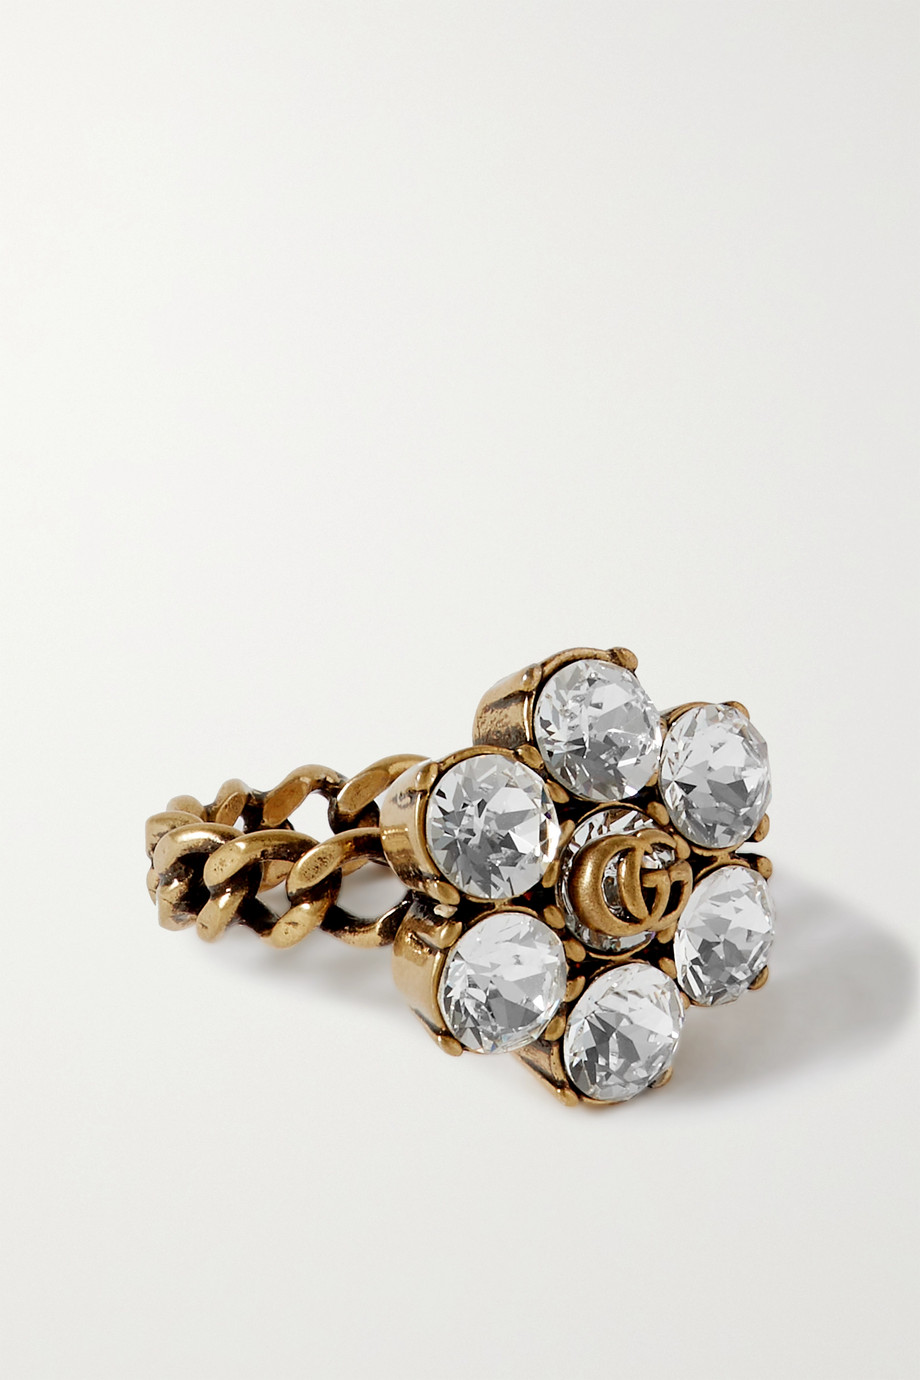 Gucci GG Marmont gold-tone crystal ring